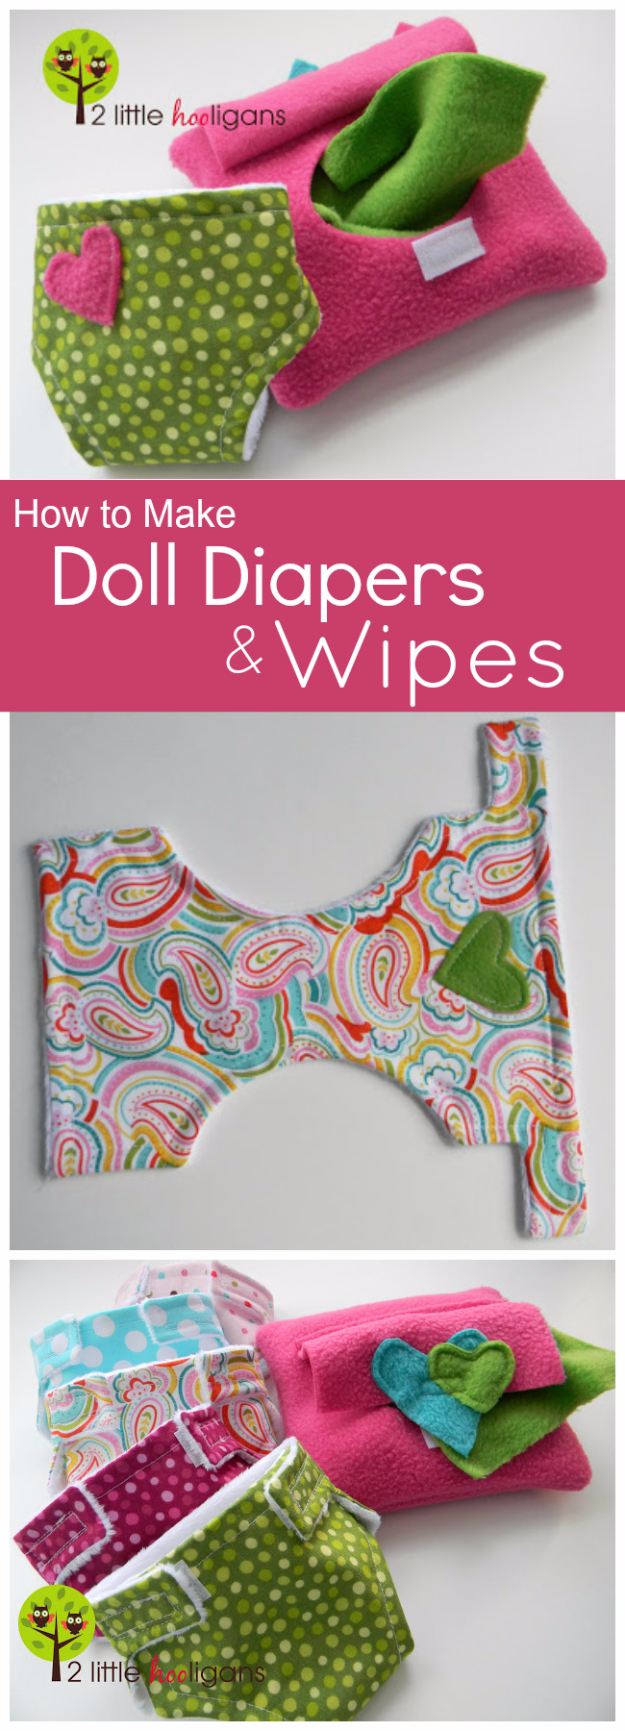 DIY Gifts for Babies - Doll Diapers And Wipes - Best DIY Gift Ideas for Baby Boys and Girls - Creative Projects to Sew, Make and Sell, Gift Baskets, Diaper Cakes and Presents for Baby Showers and New Parents. Cool Christmas and Birthday Ideas http://diyjoy.com/diy-gifts-for-baby